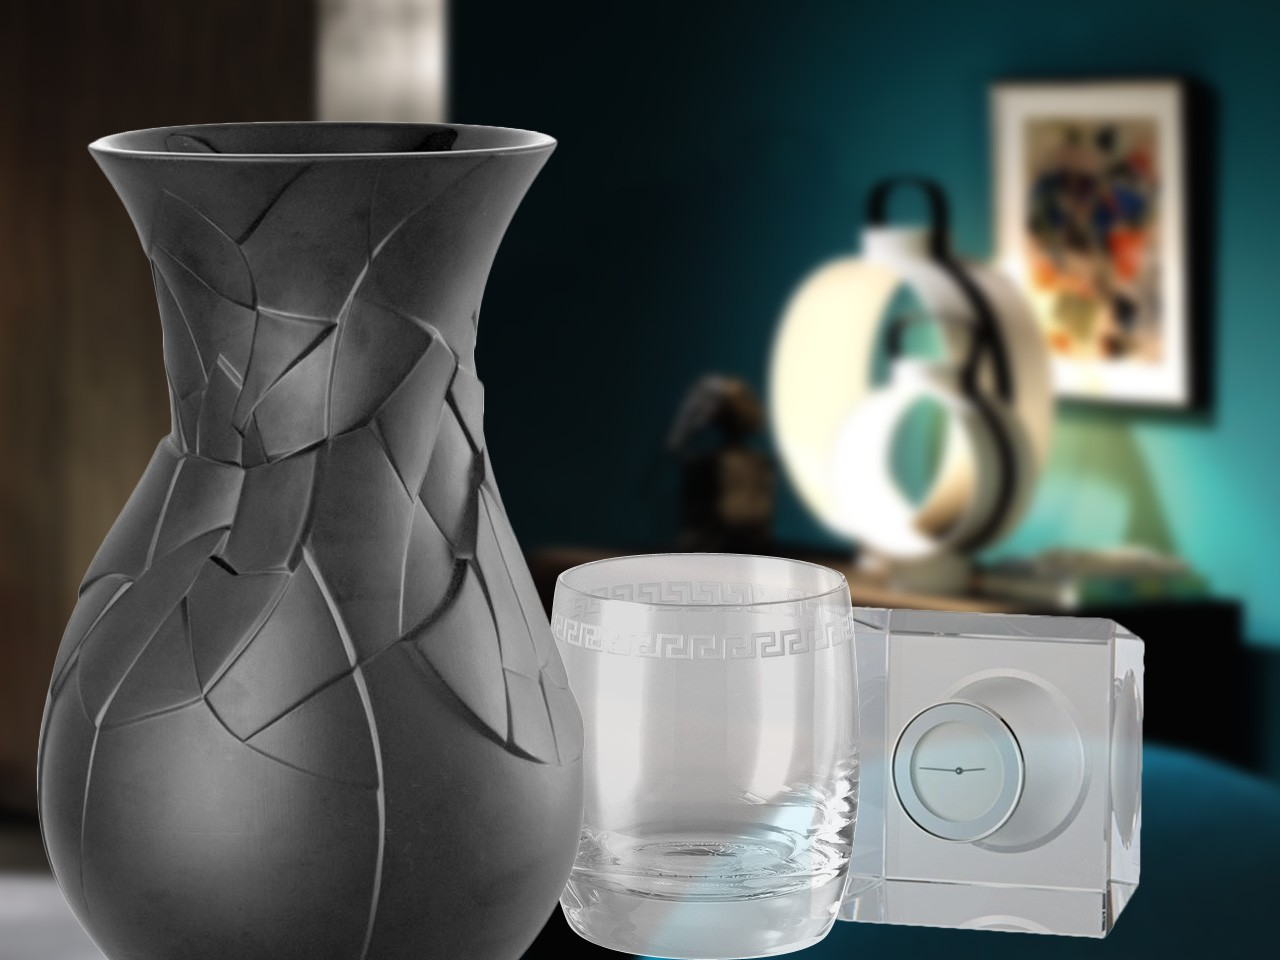 Rosenthal Vases of Phases black vase, Versace Lumiere whiskey tumbler and Rosenthal Block Glass clock efore blured out living room background.